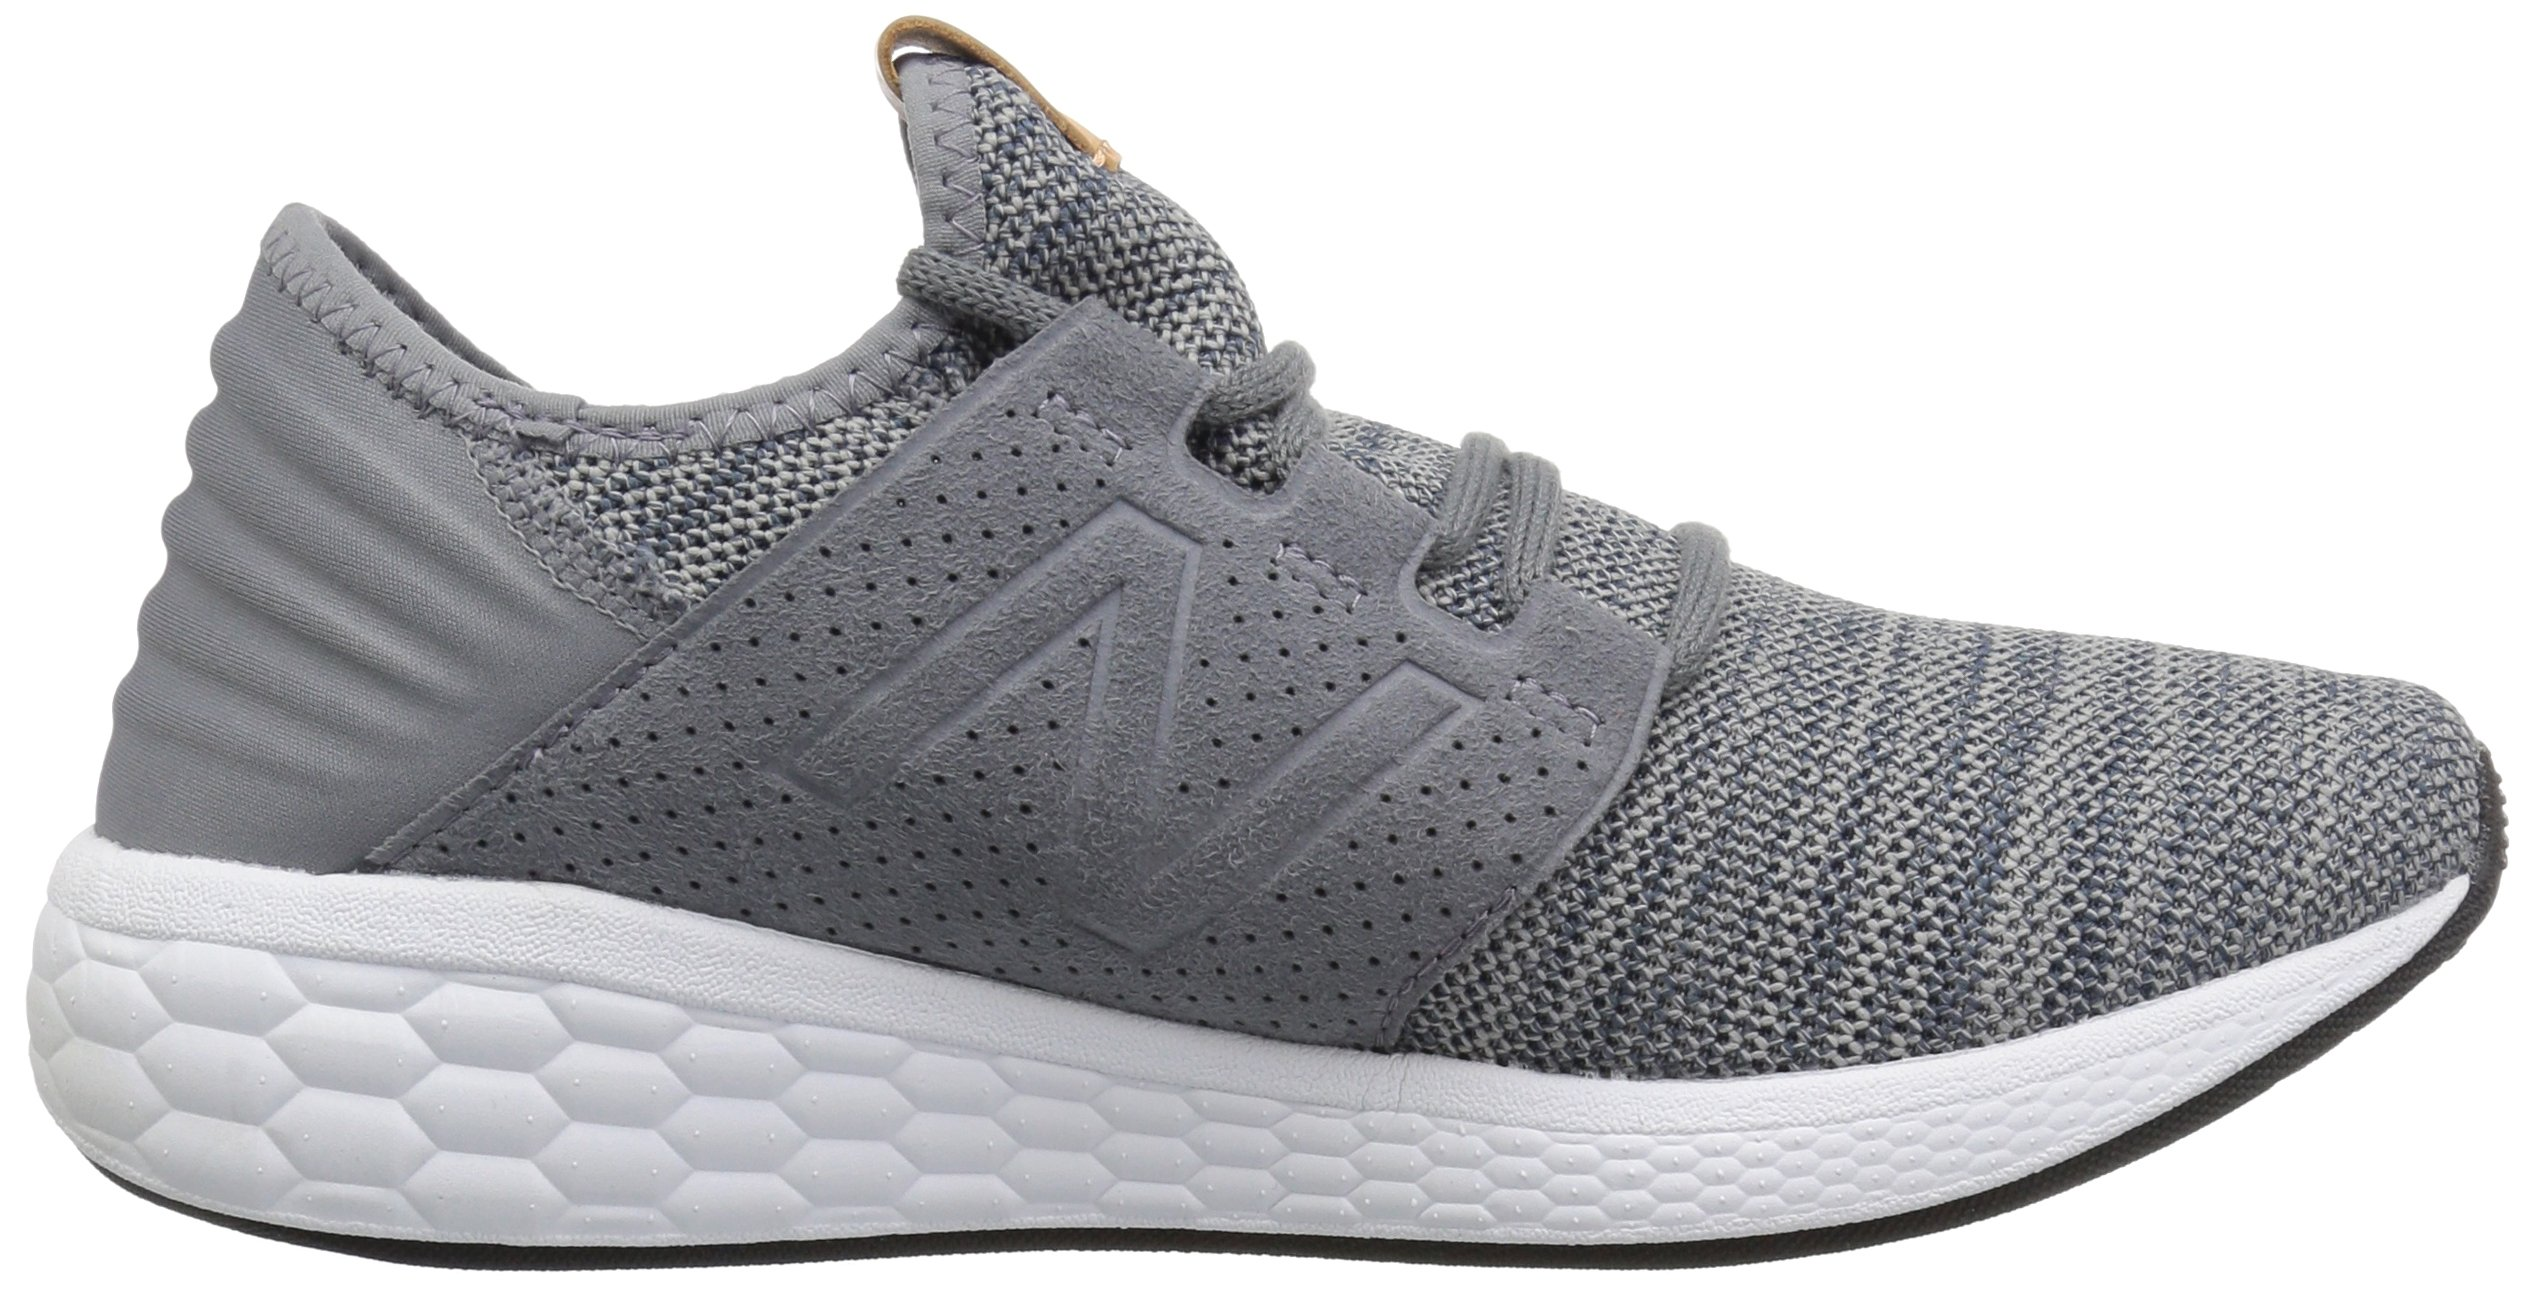 New Balance Men's Cruz V2 Fresh Foam Running Shoe, Gunmetal / Thunder, 7 D US by New Balance (Image #6)